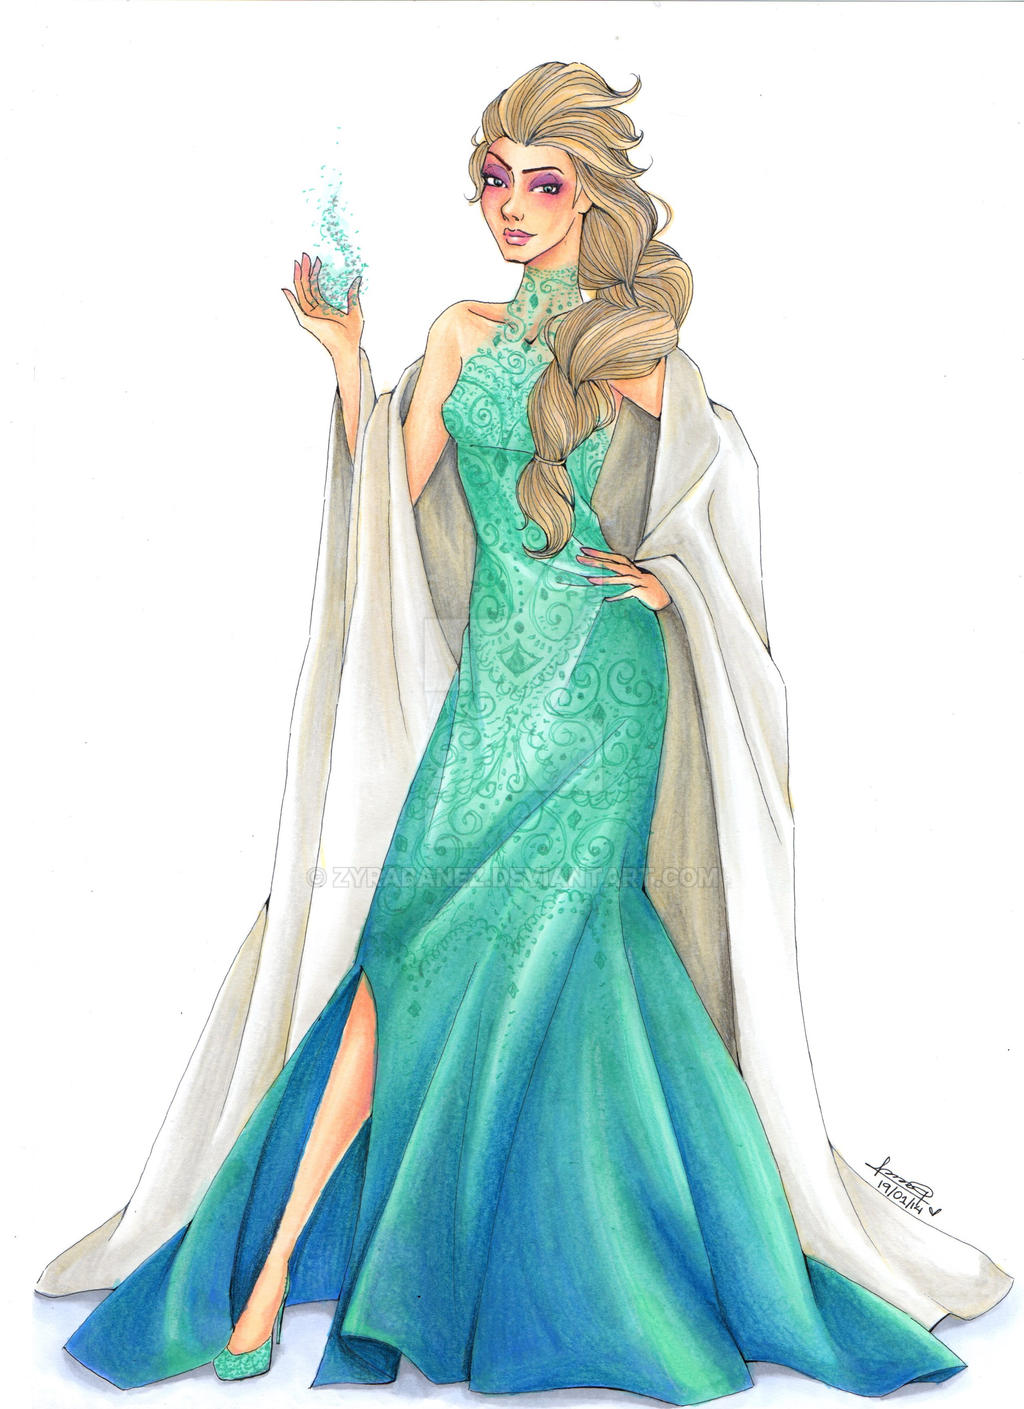 Fashion Illustration Elsa By Zyrabanez On DeviantArt